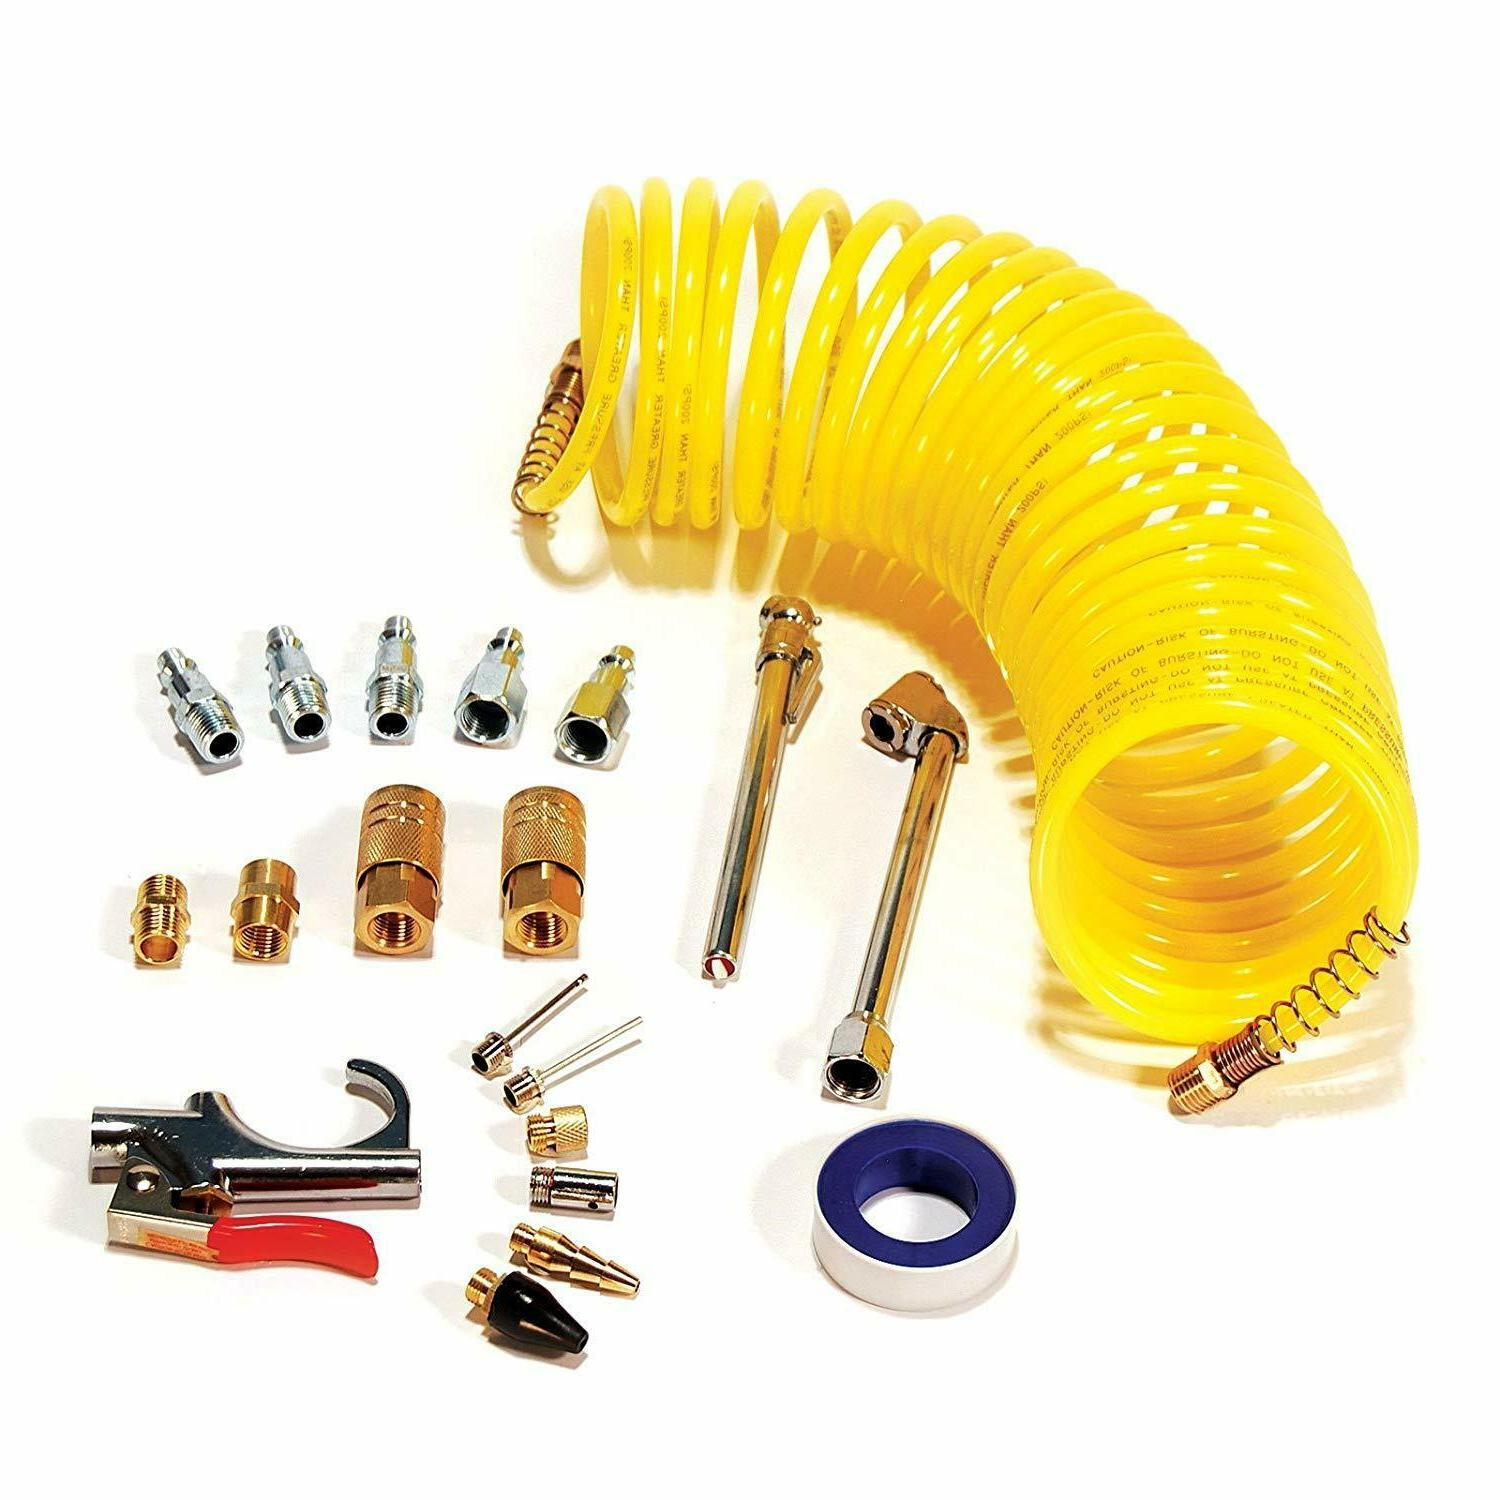 Primefit 20-Piece Air Accessory Kit with 25-Foot Recoil Air